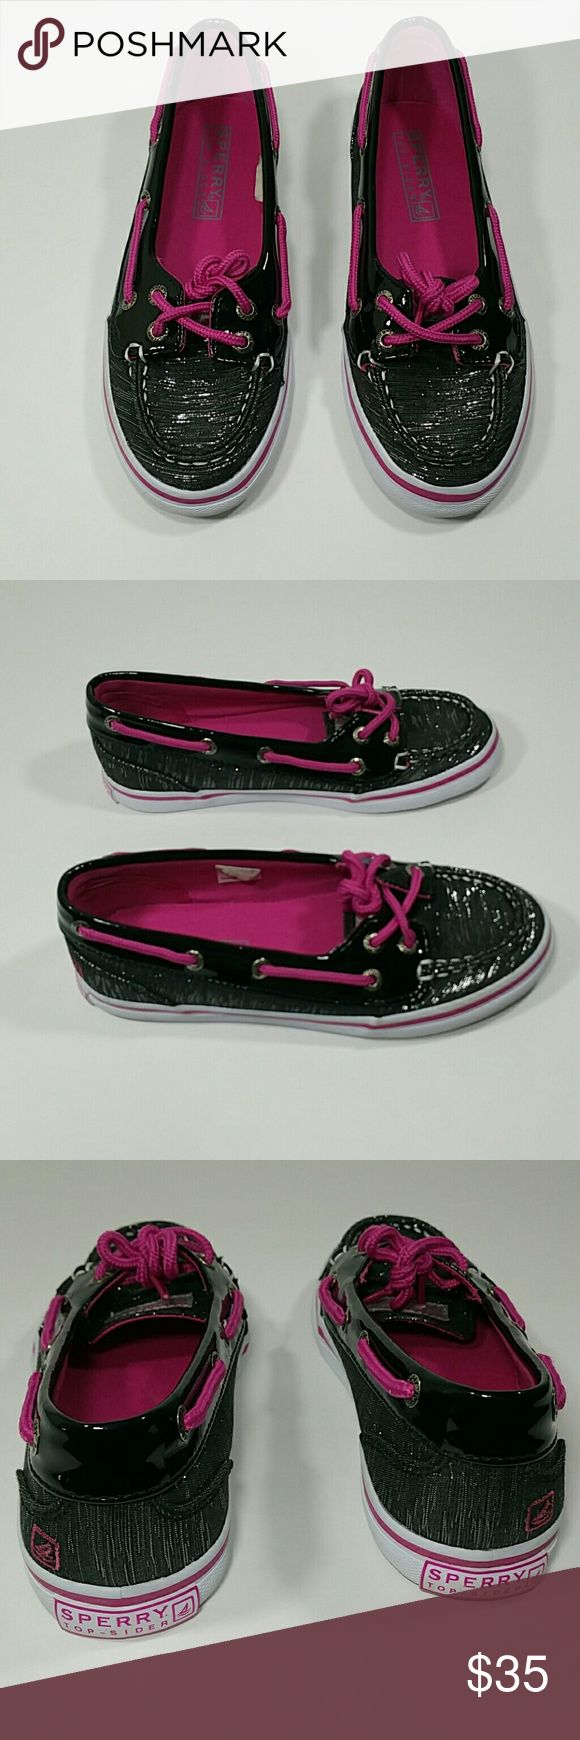 Sperry Topsiders Girls Shoes Adorable never worn Sperry Topsiders shoes for girls never worn Sperry Top-Sider Shoes